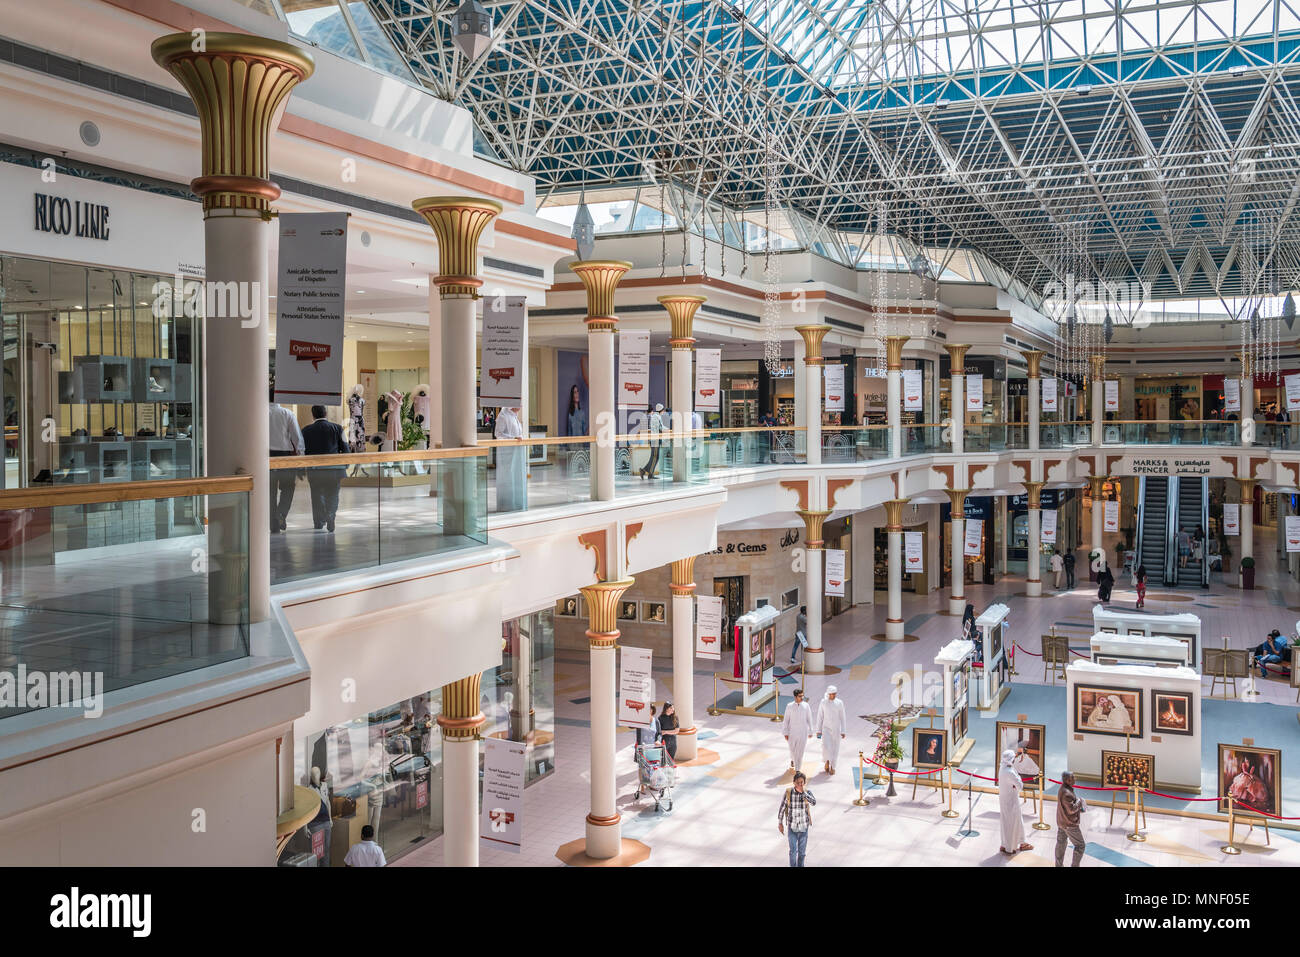 Innenarchitektur und Design der Wafi Shopping Center, Dubai, Vereinigte Arabische Emirate, Naher Osten. Stockfoto